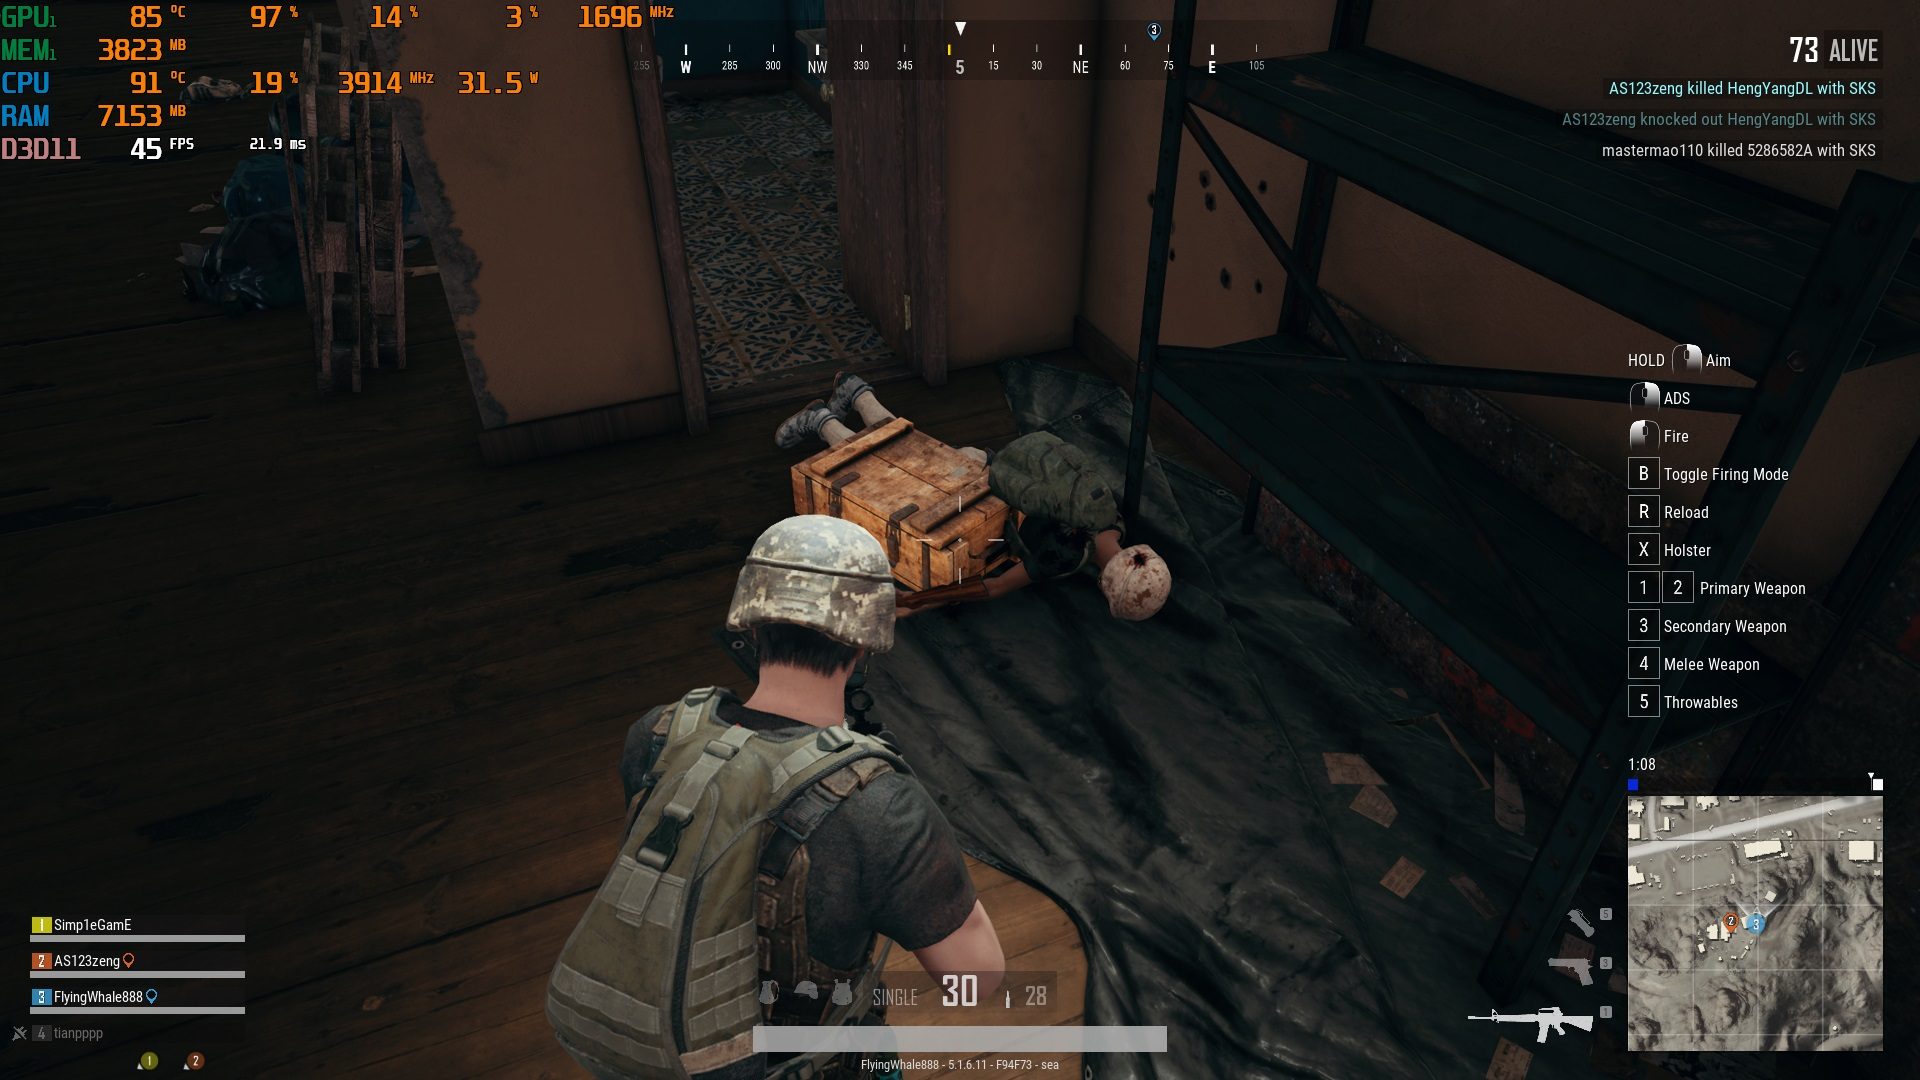 playerunknowns-battlegrounds-screenshot-jpg.9001